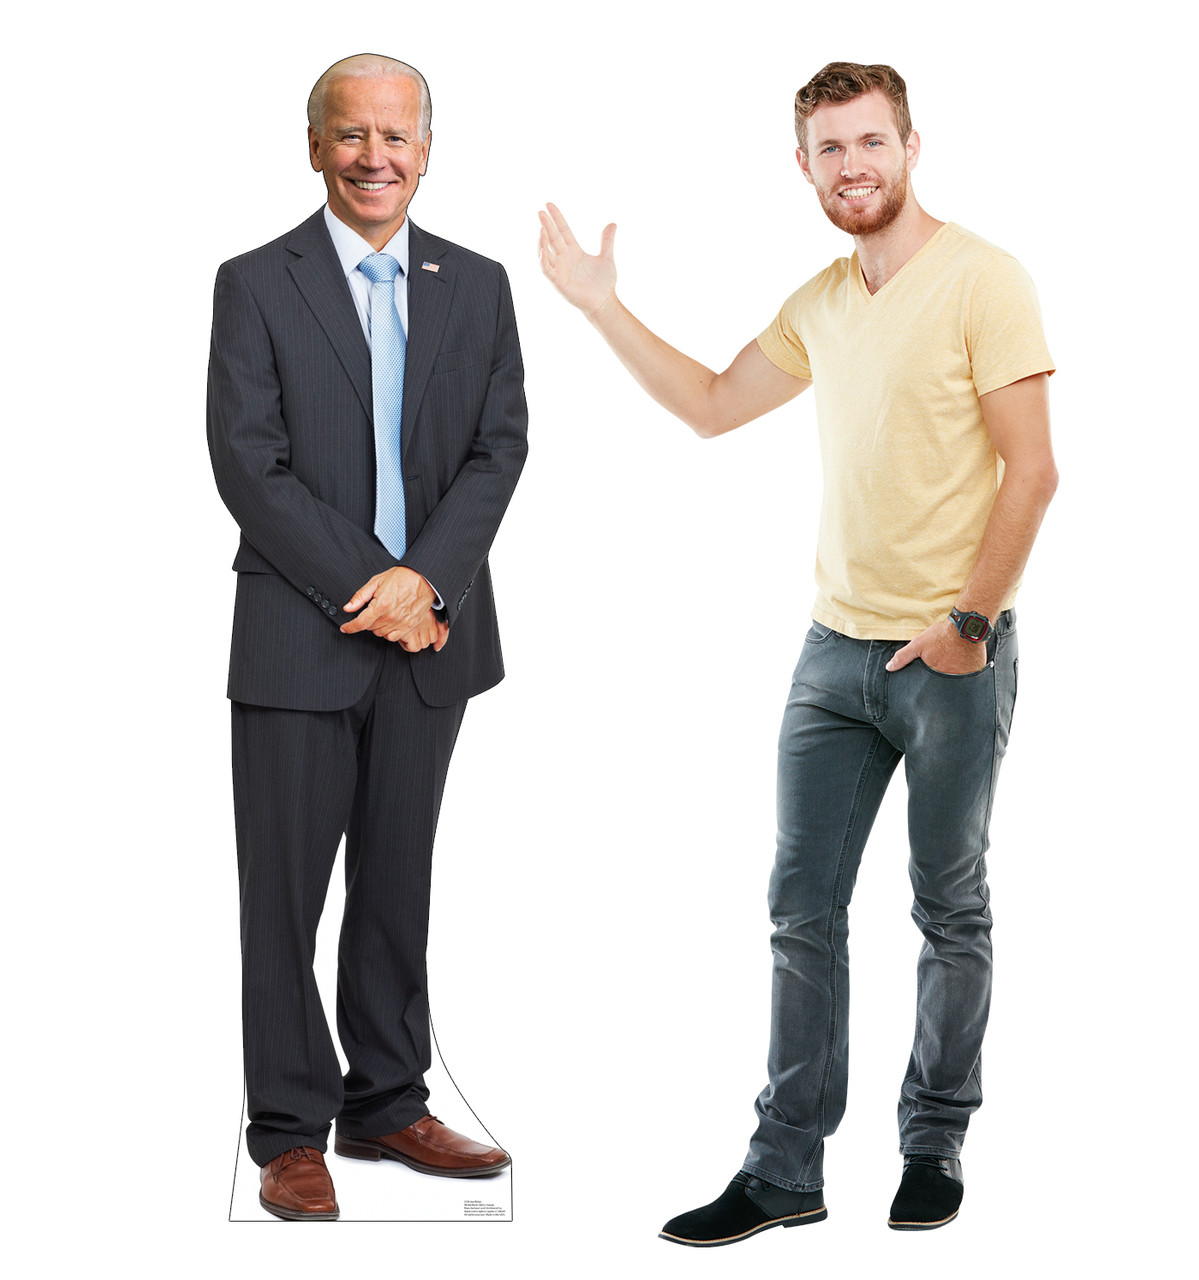 Life-size standee of President Joe Biden with model.